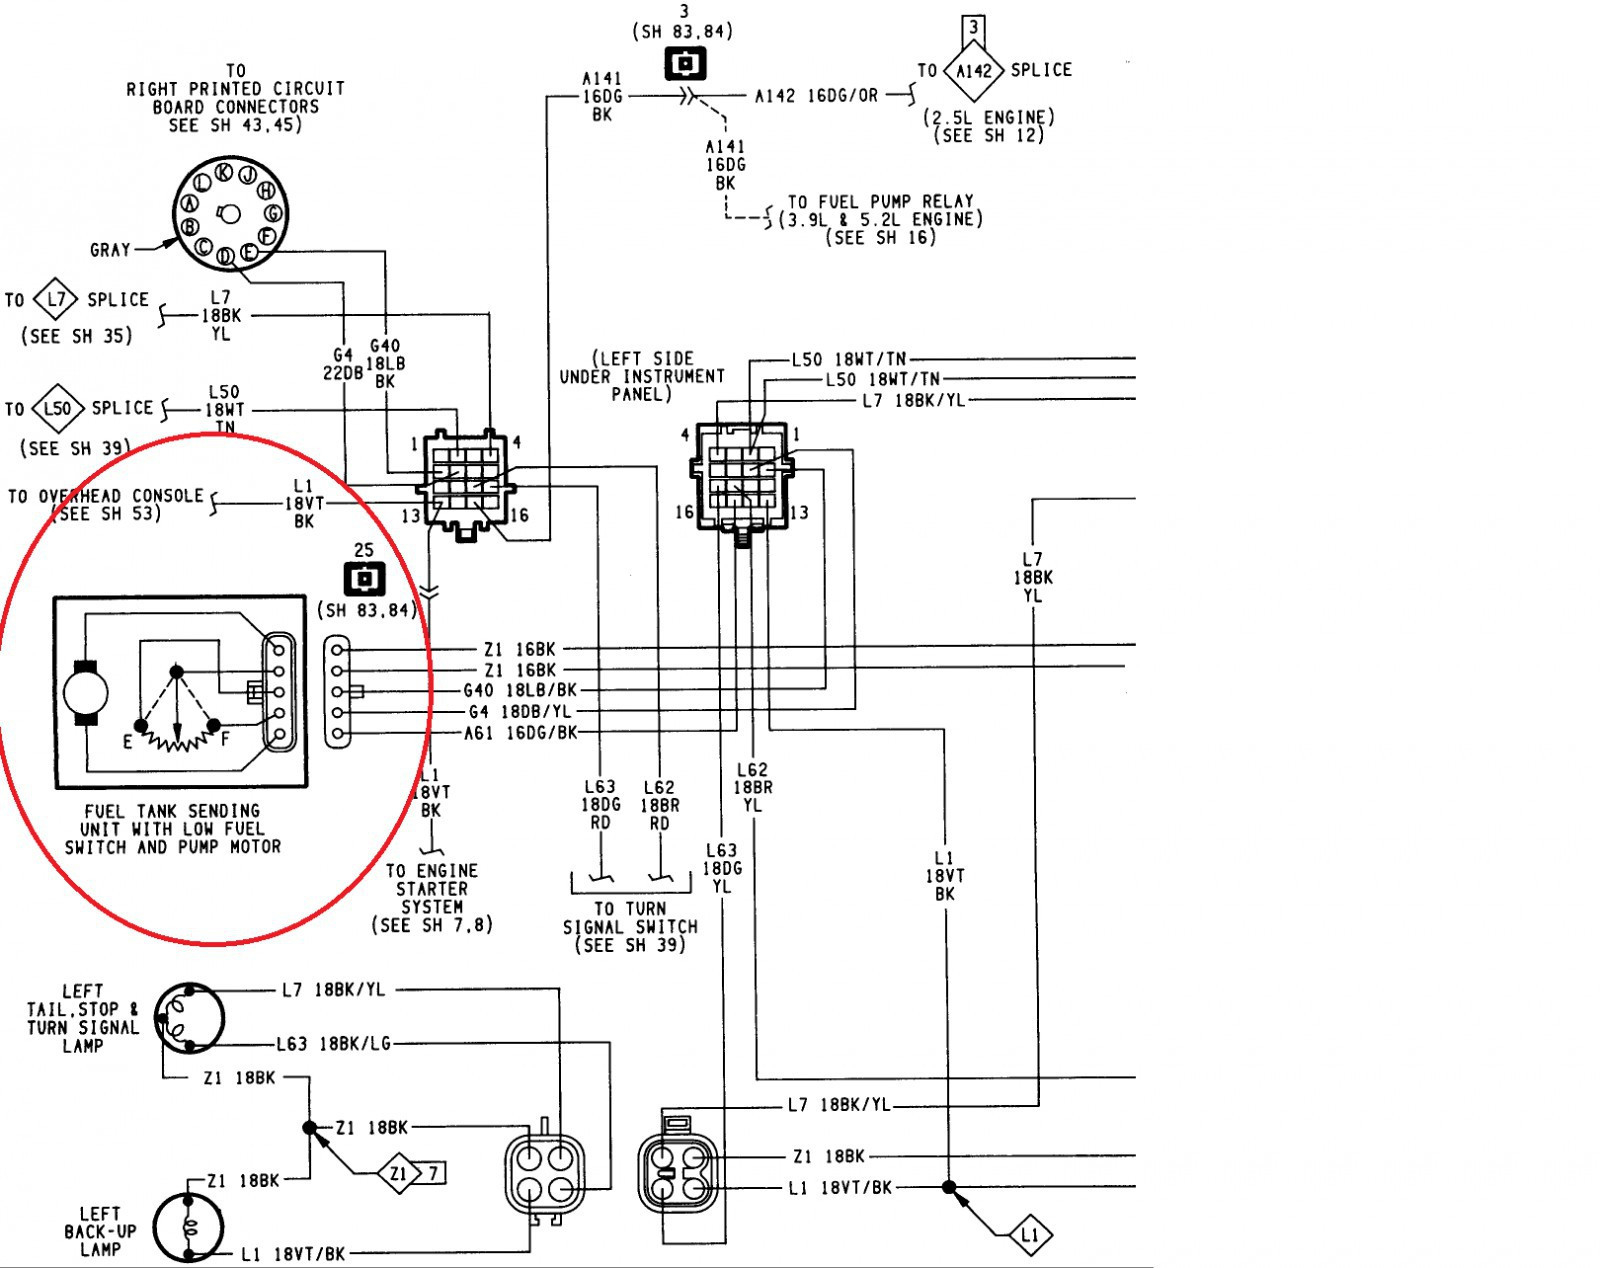 marine fuel gauge wiring diagram Collection-Wiring Diagrams for Vdo Gauges Valid Marine Fuel Gauge Wiring Diagram Boat Fuel Gauge Wiring Diagram 8-e